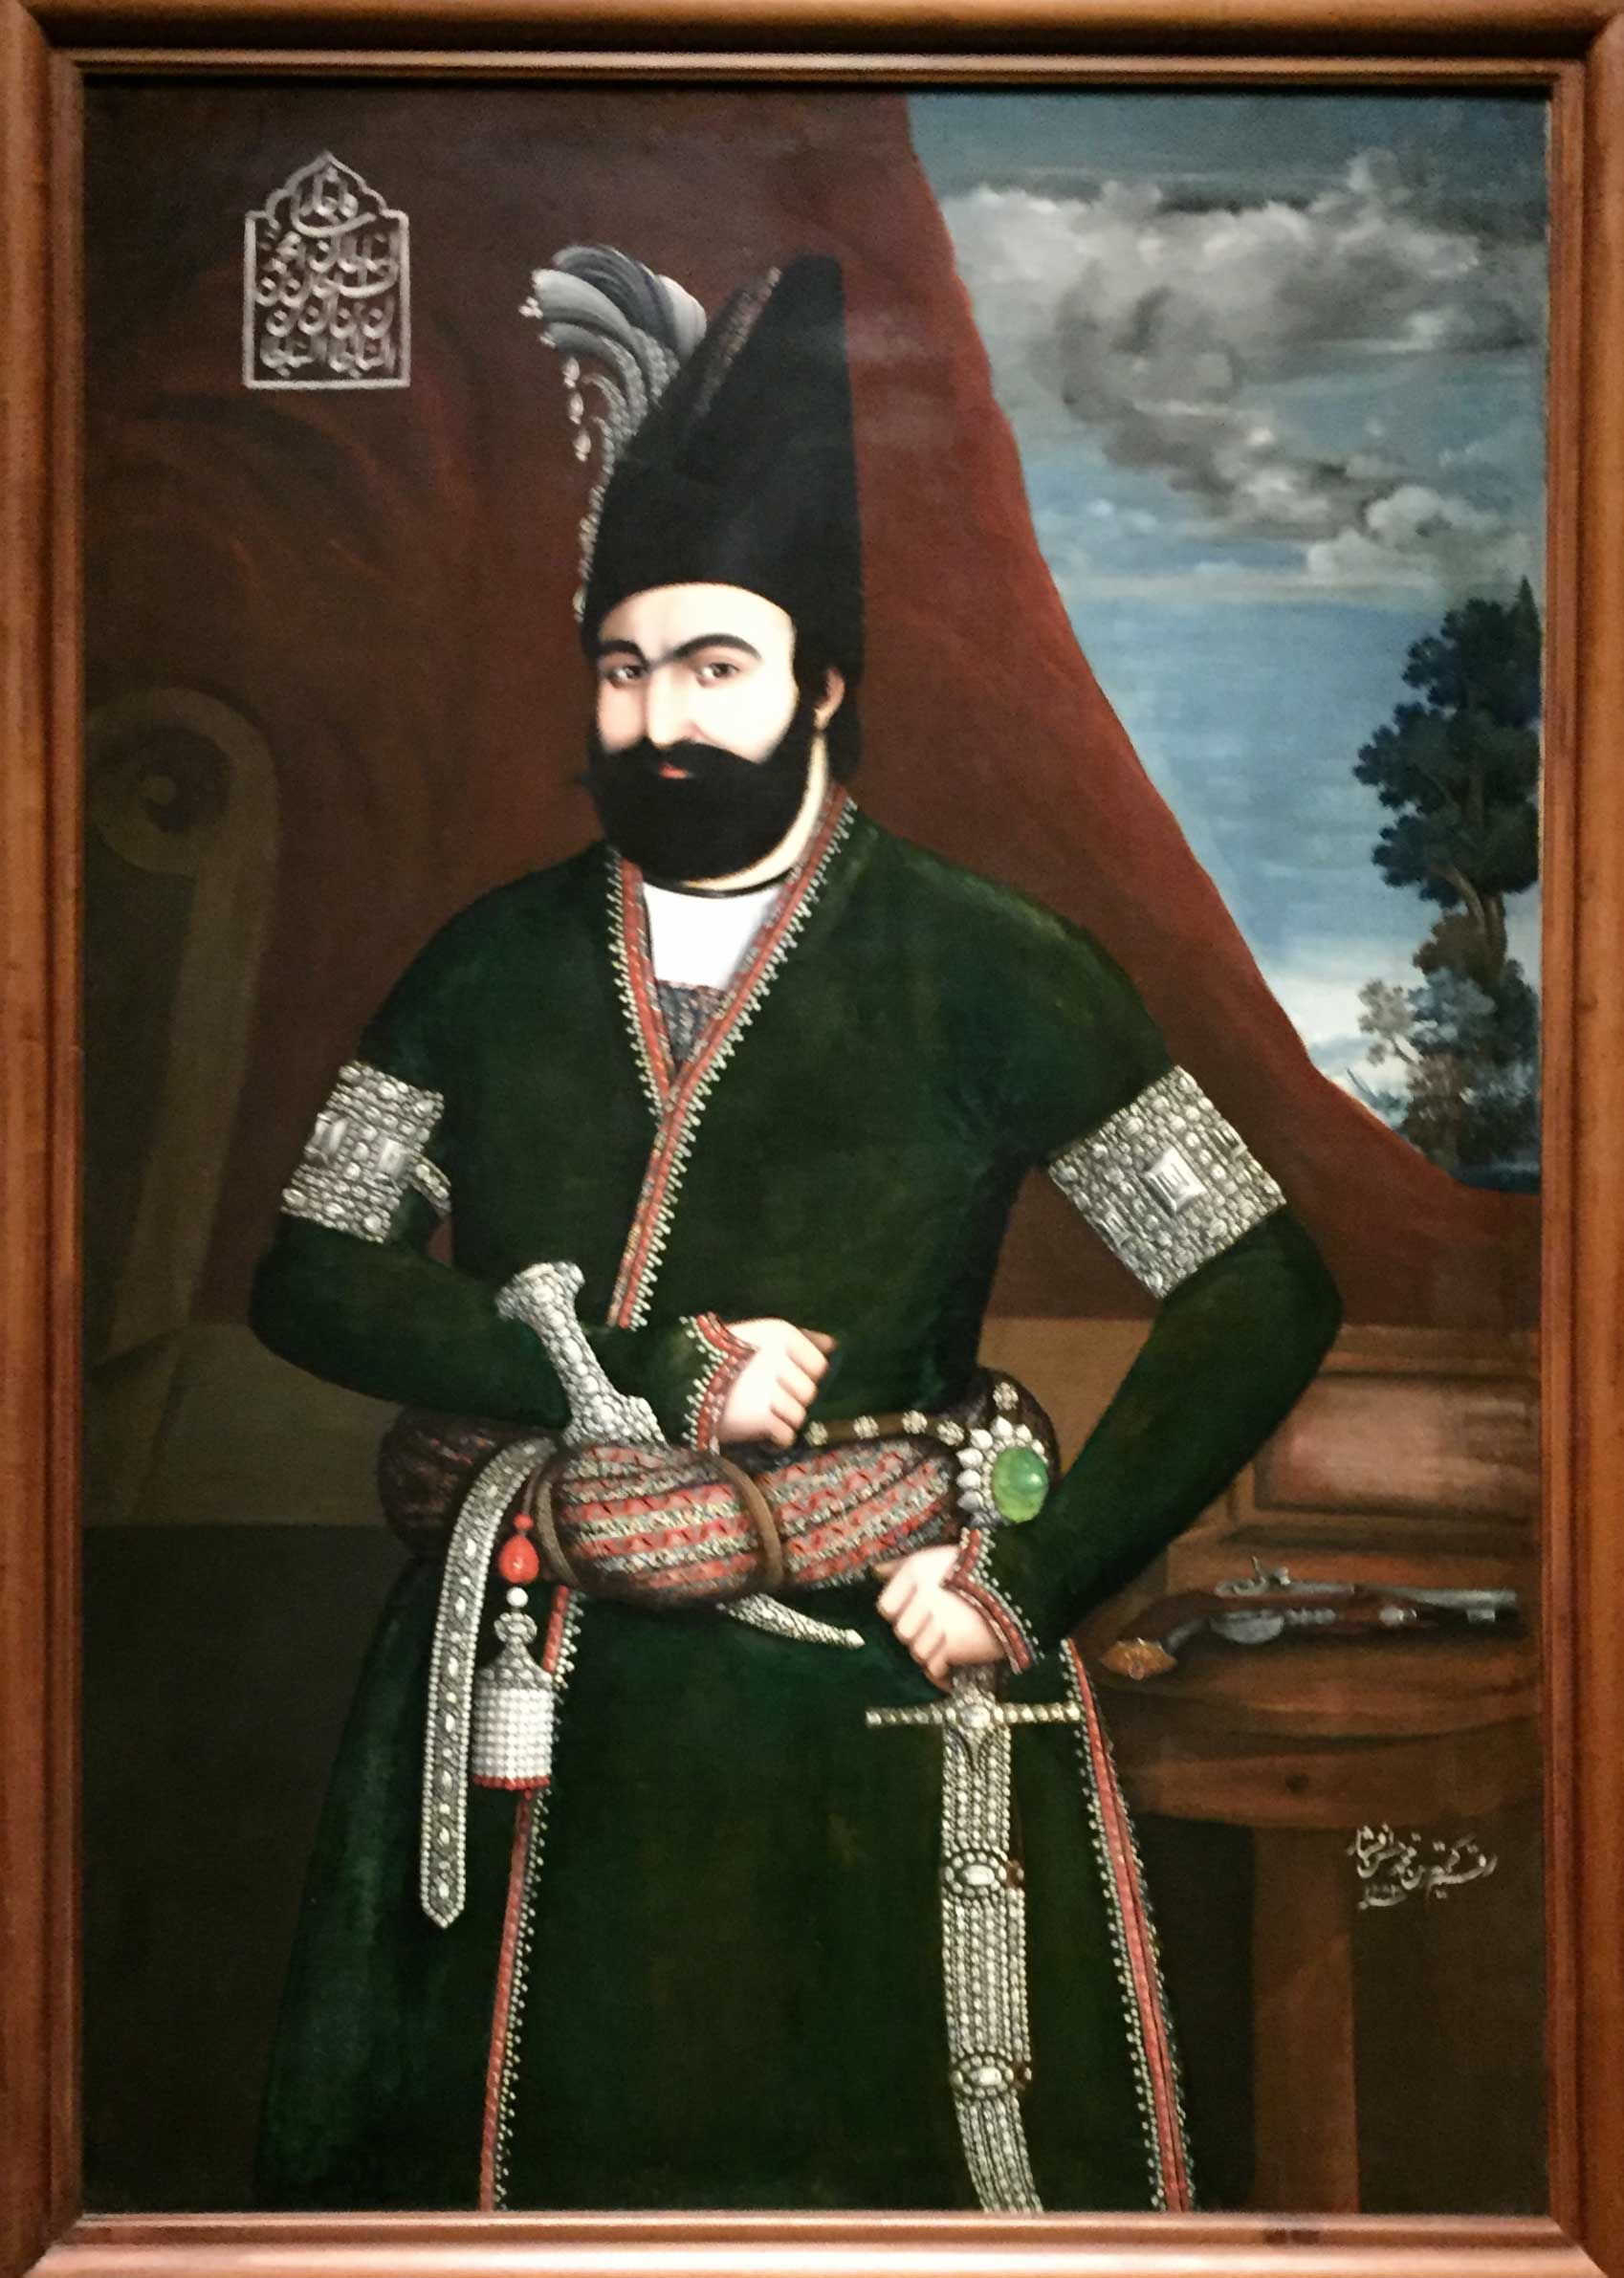 Portrait of Muhammad Shah - The Cleveland Museum of Art | Image by The Ruggist